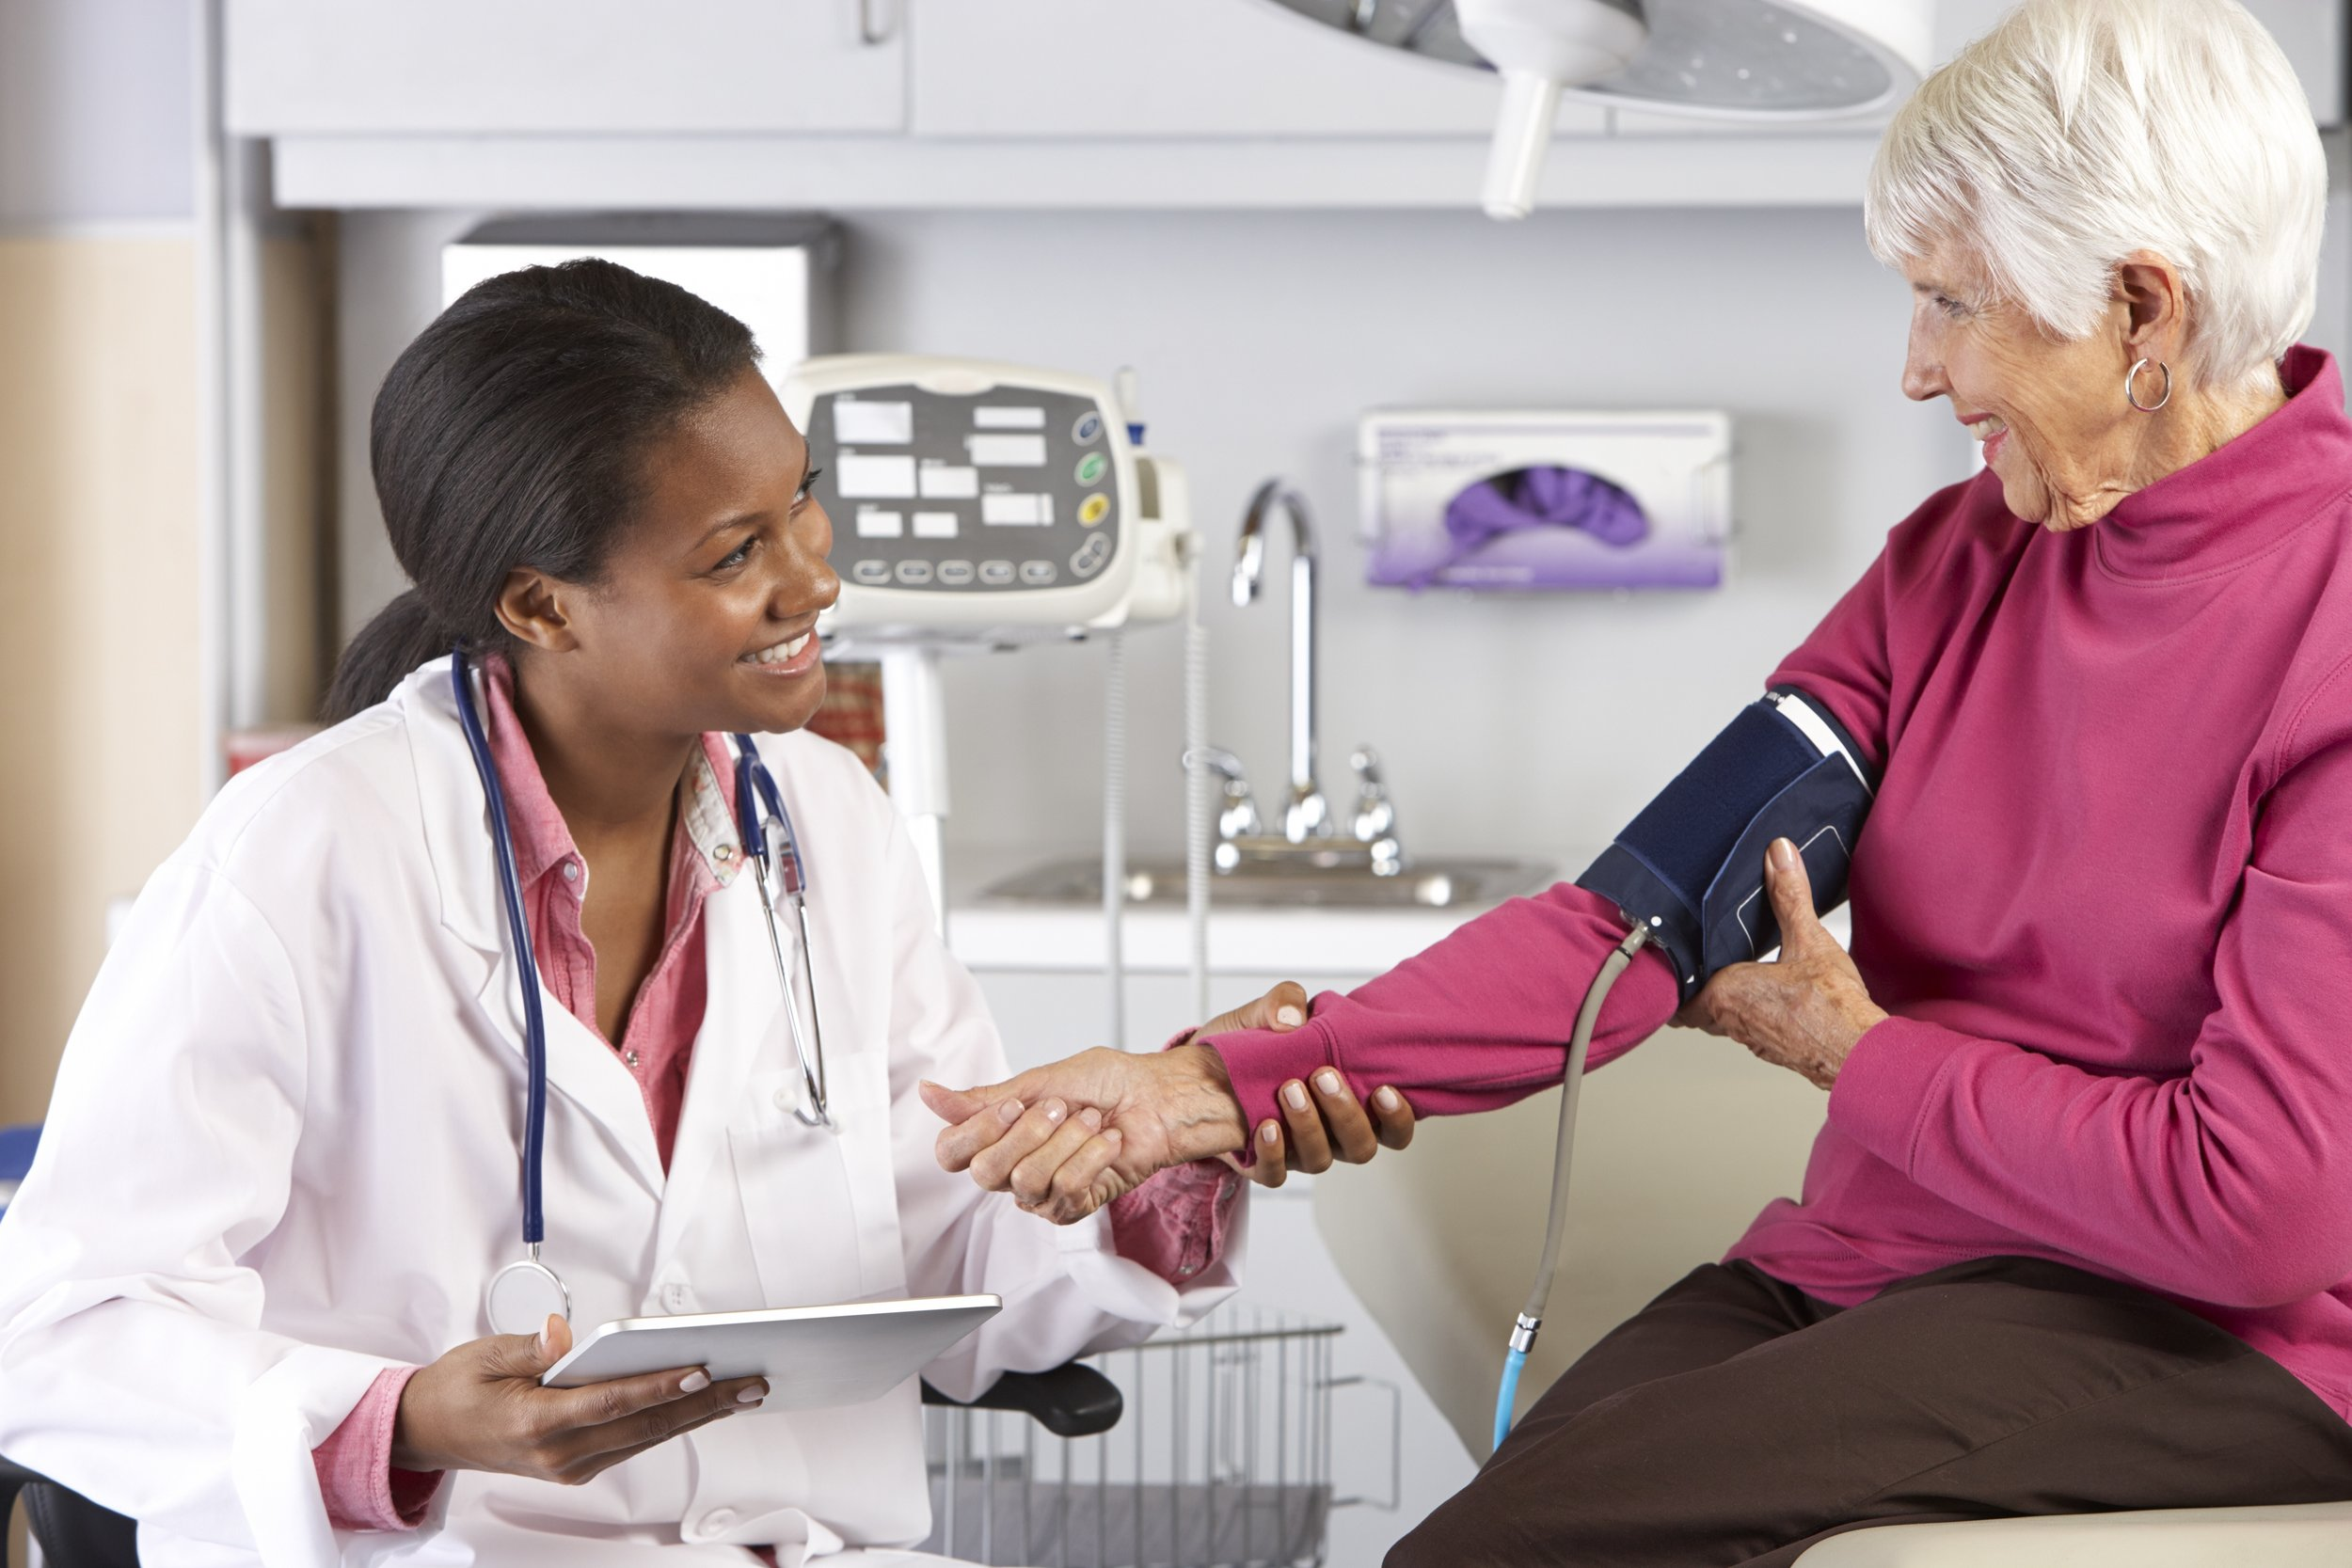 Female taking senior woman's blood pressure at a physical check up